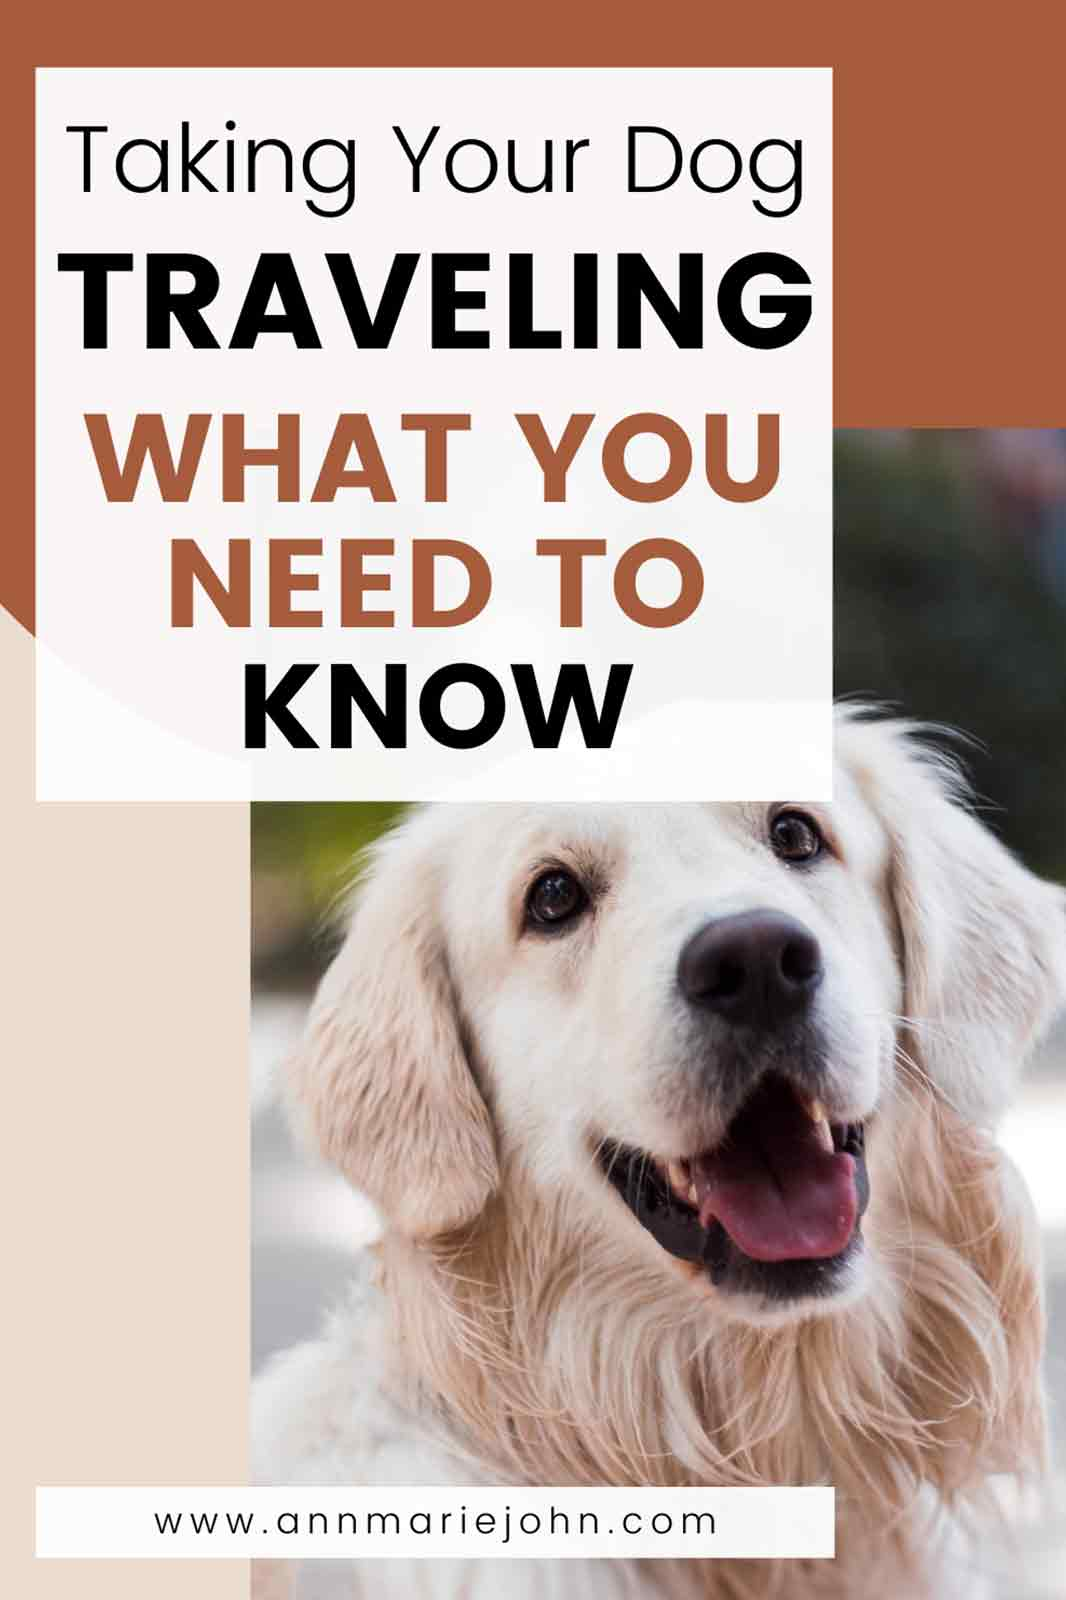 Taking Your Dog Traveling, What You Need to Know